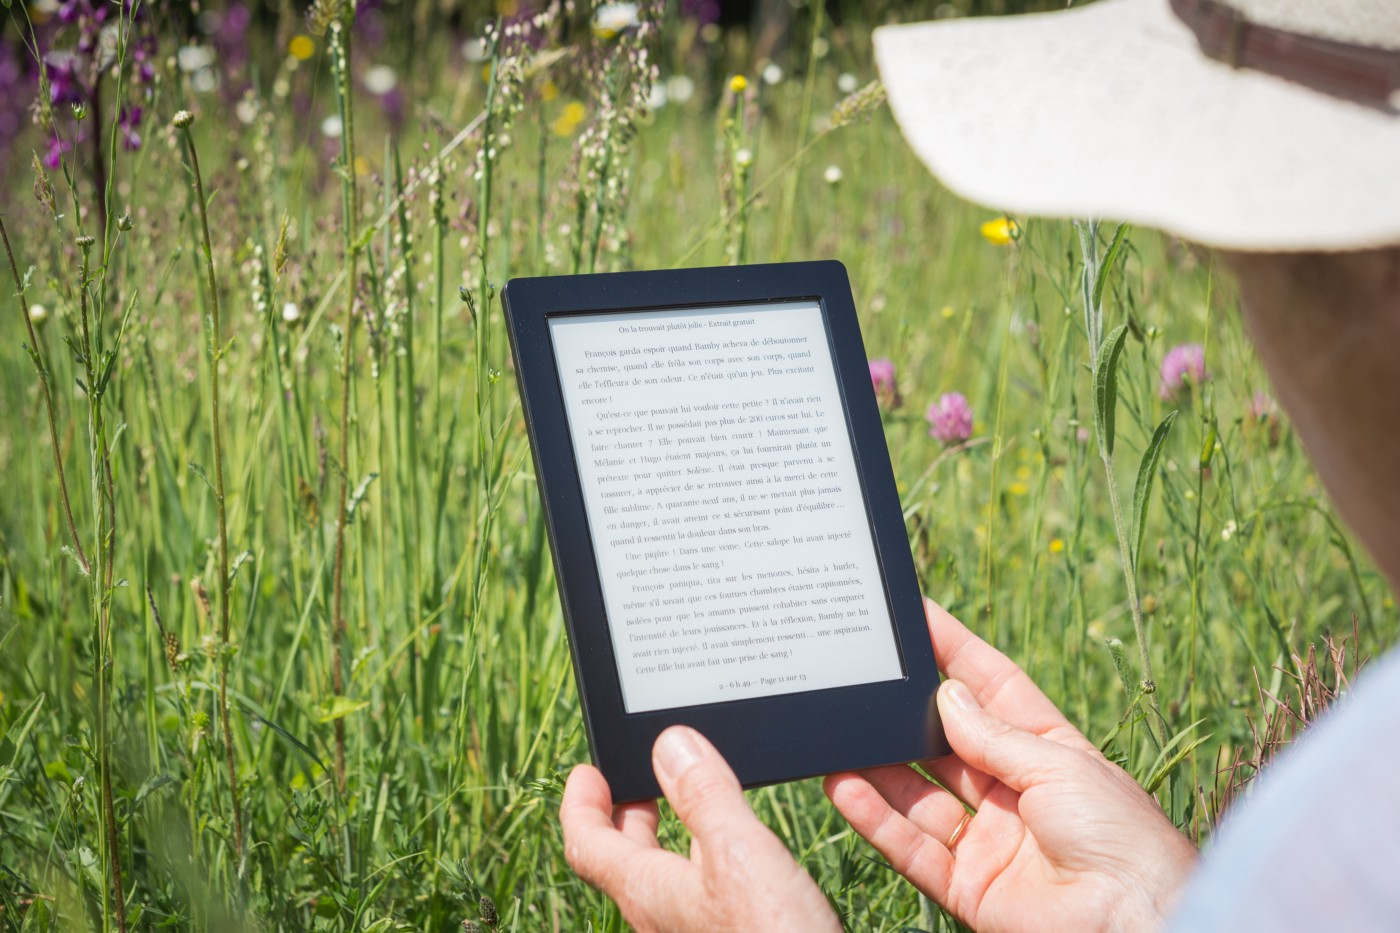 I was reading with my Kindle ereader